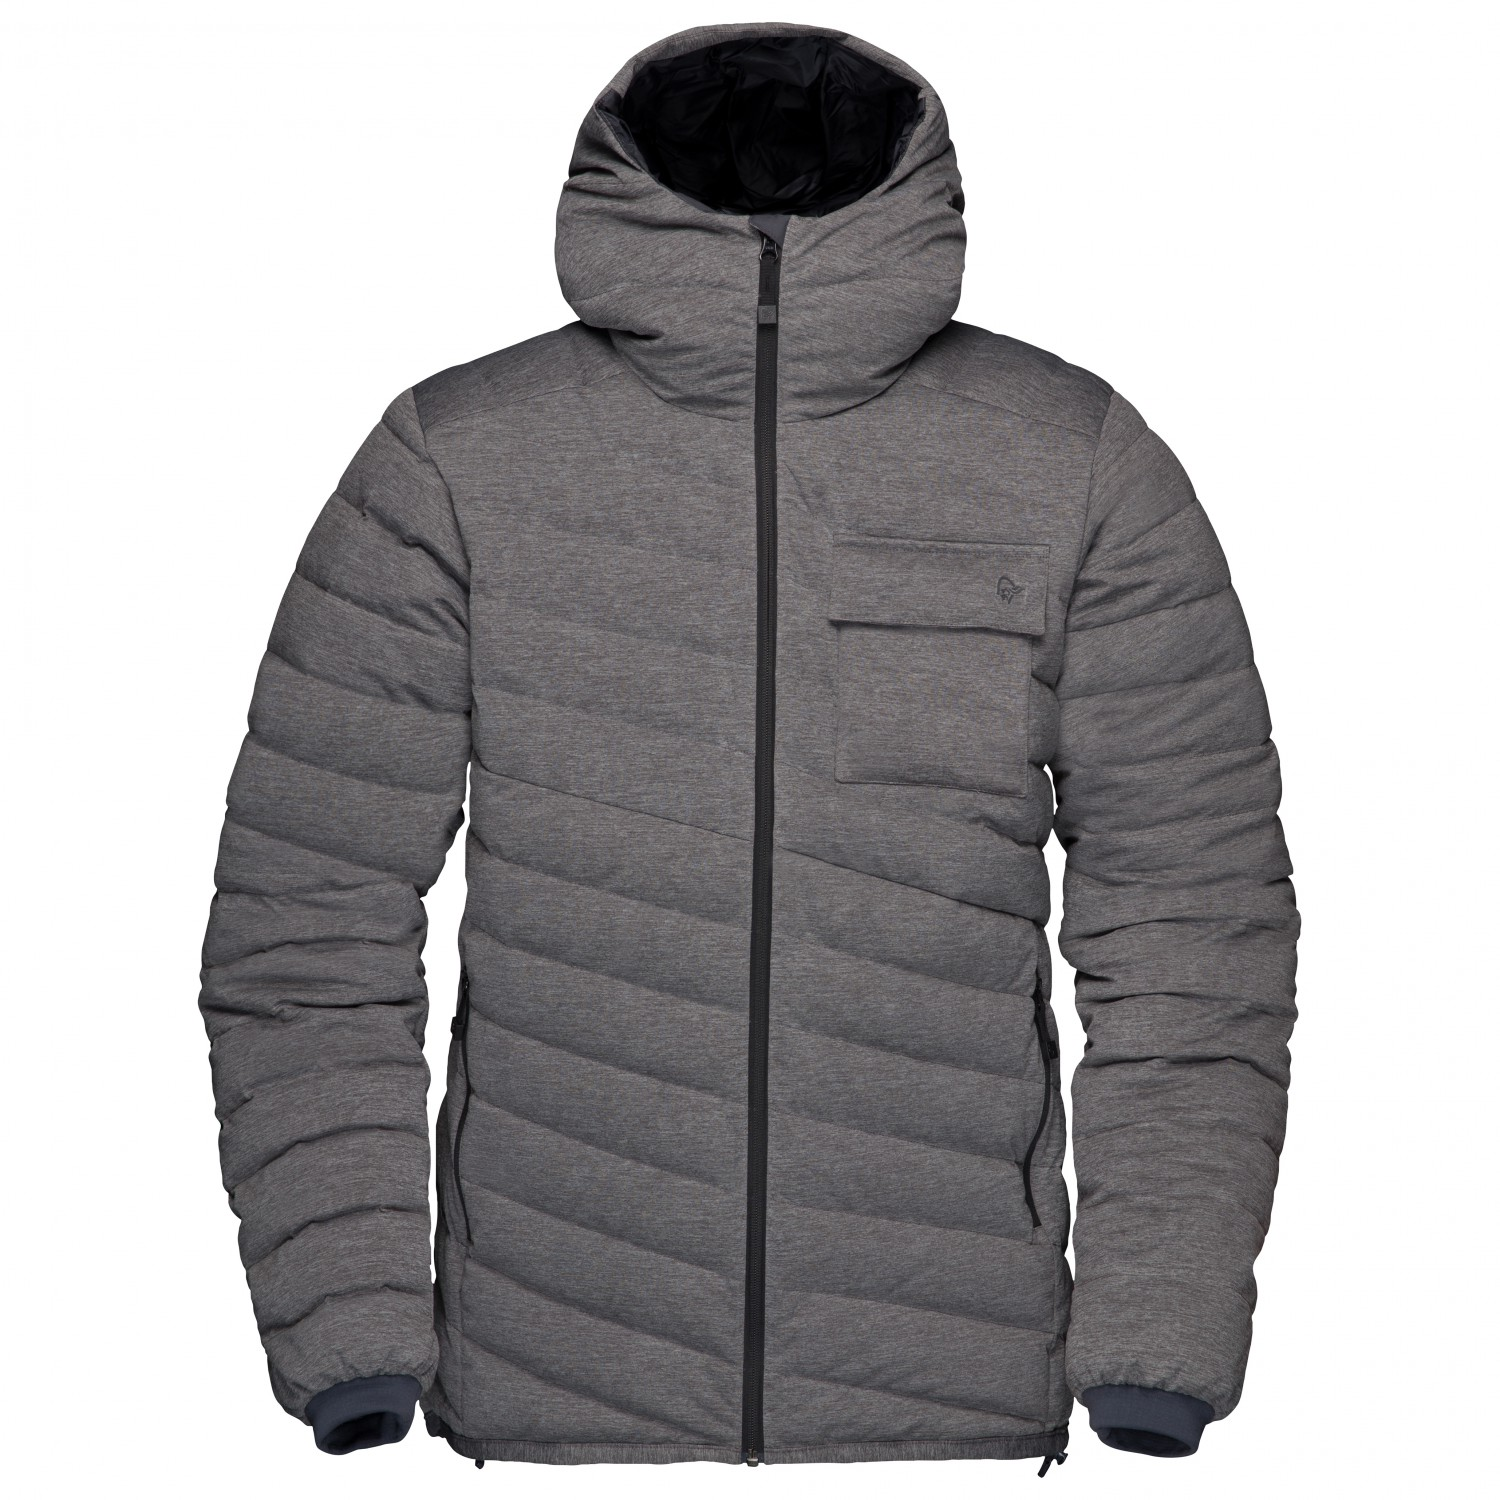 Daunen jacke light